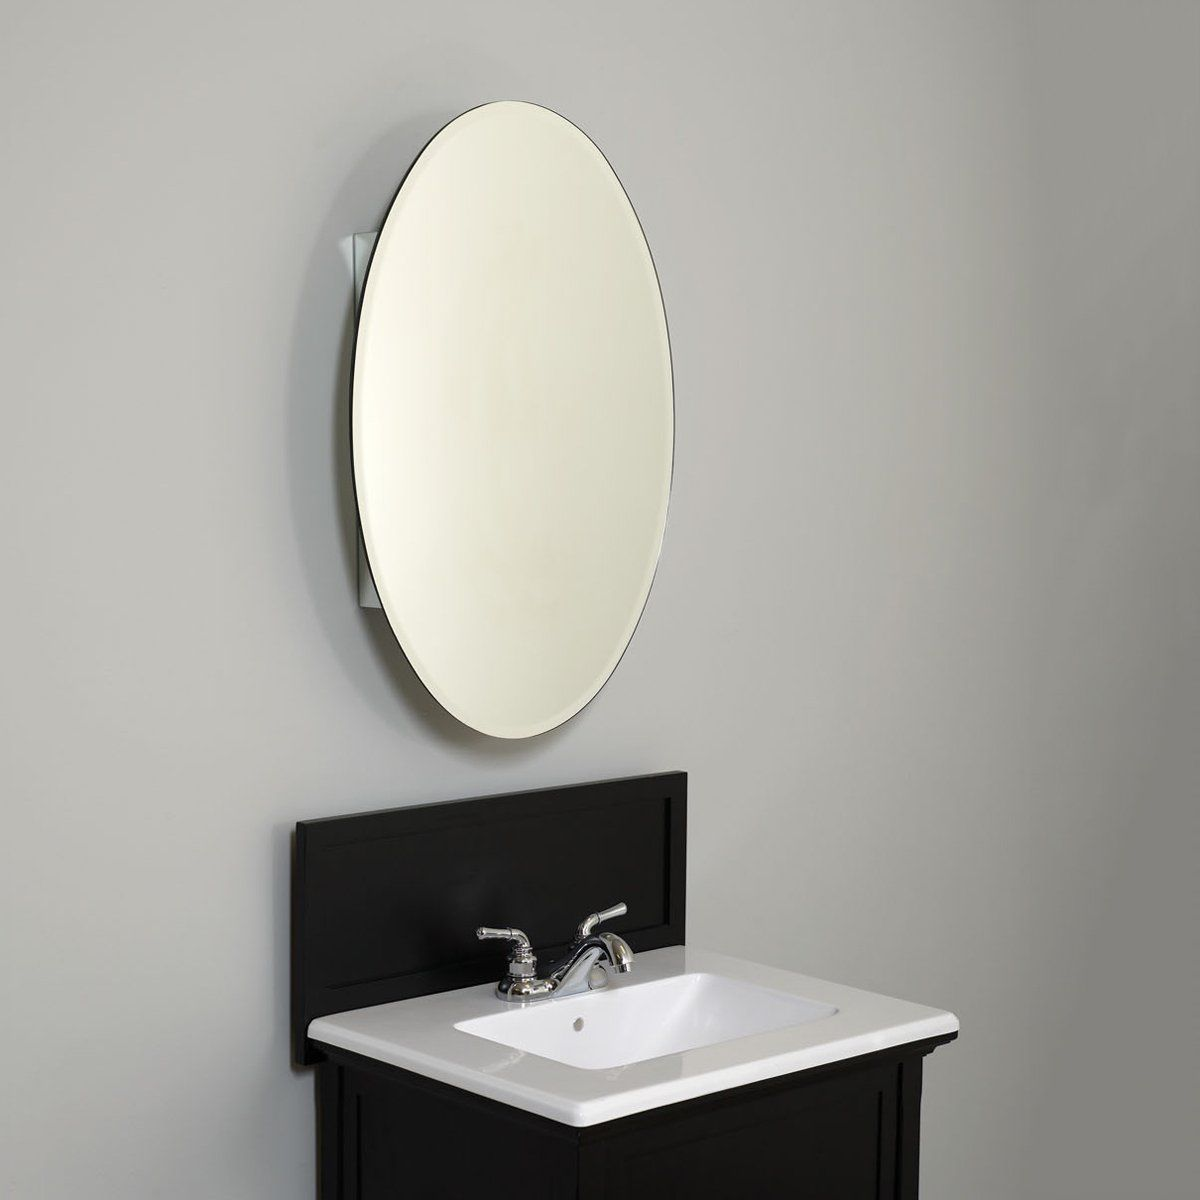 Zenith Products MVA 2030 Medicine Cabinet With Oval Beveled Mirror - Fixture Universe